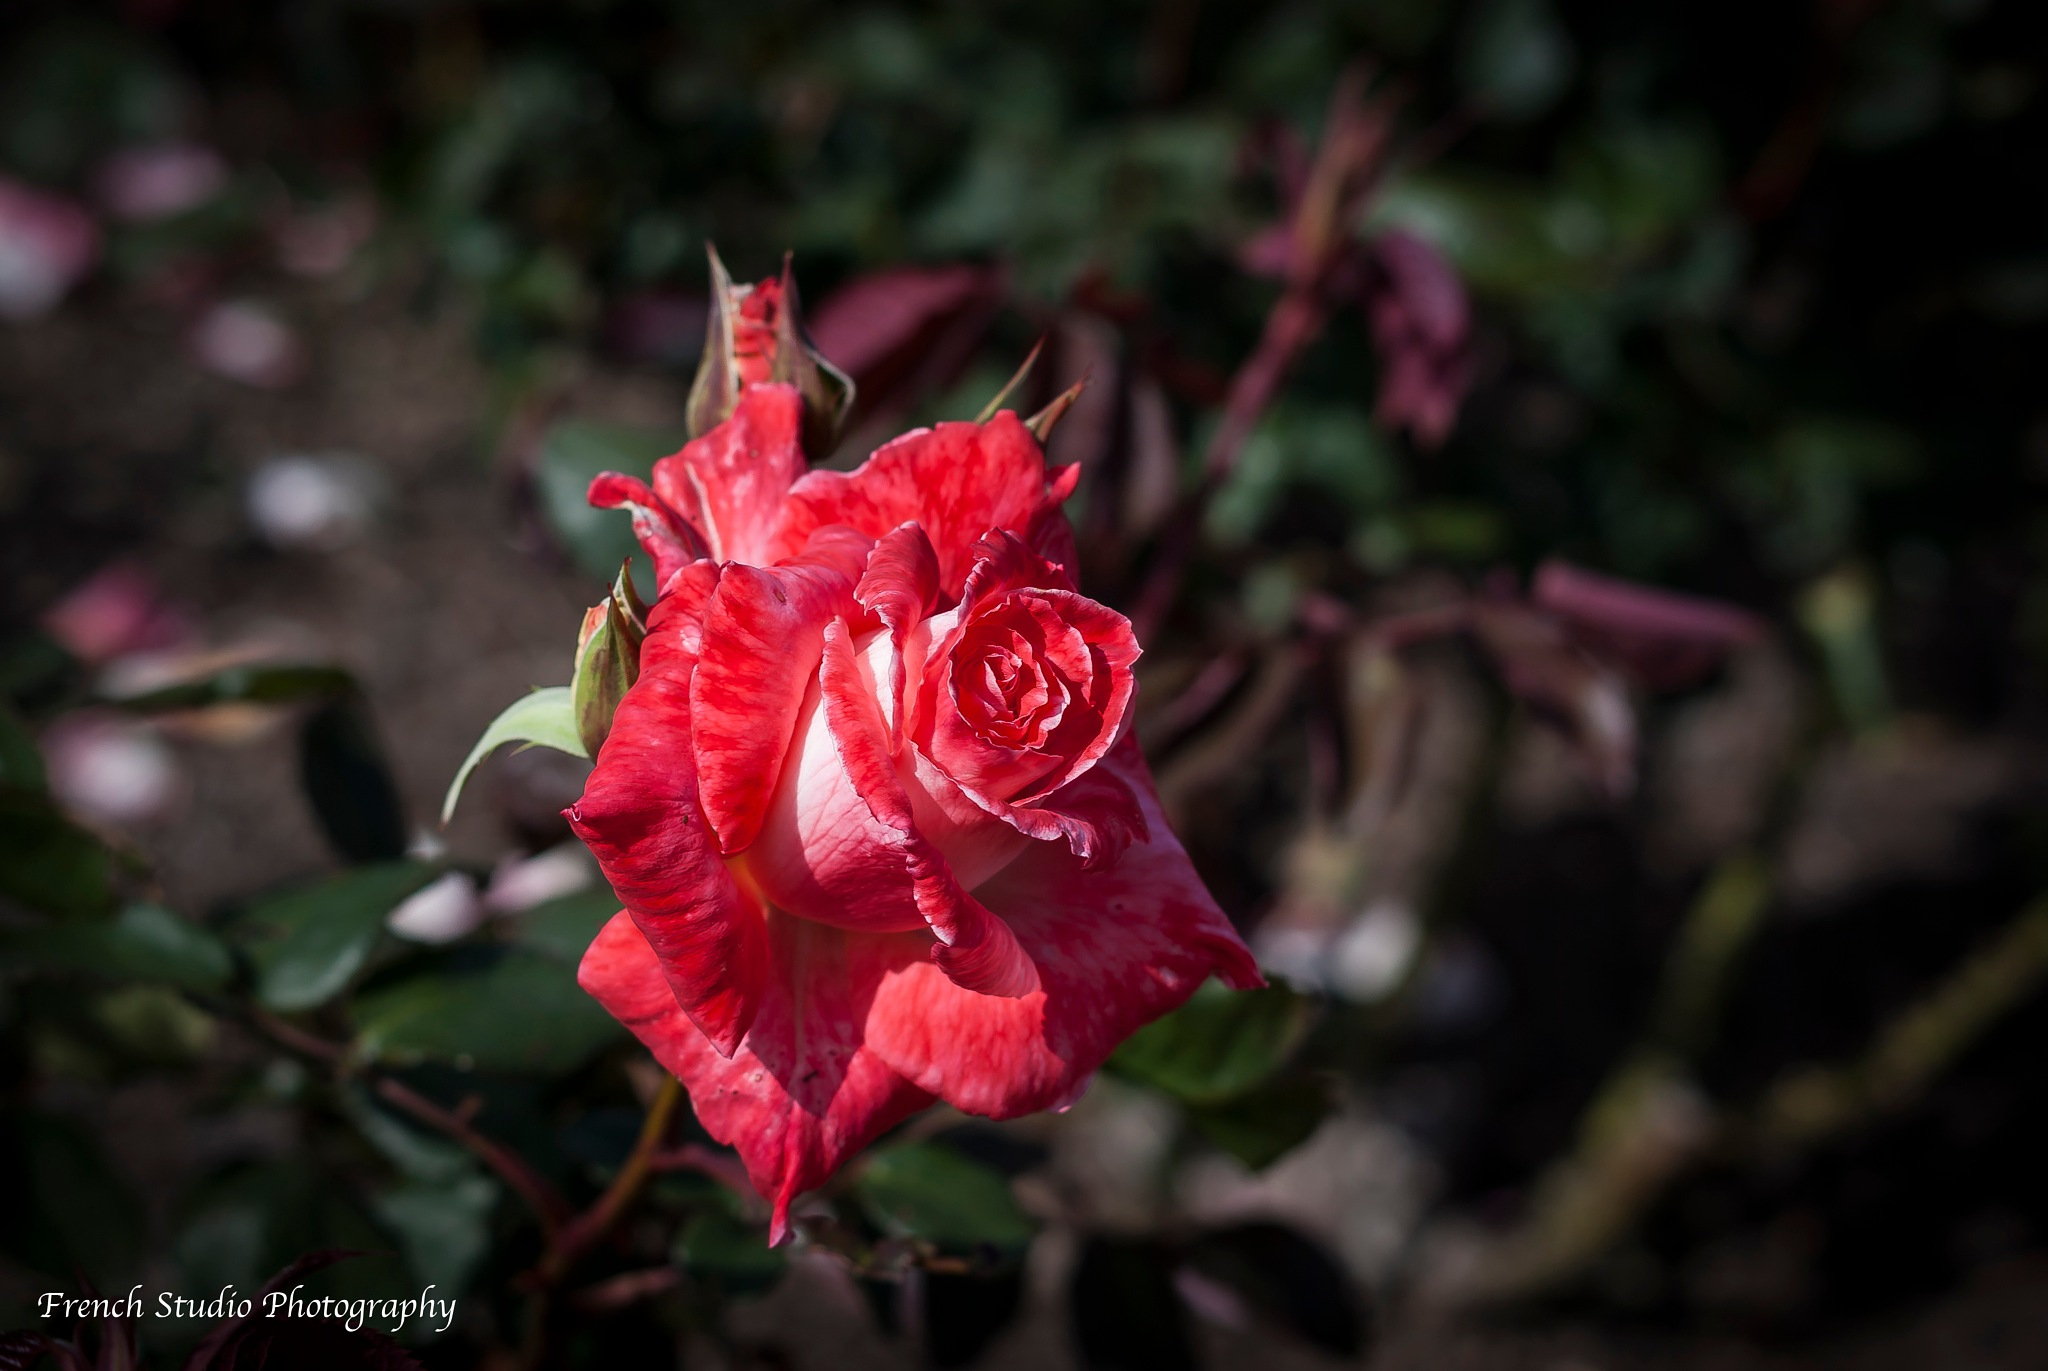 The rose by gerardrotse